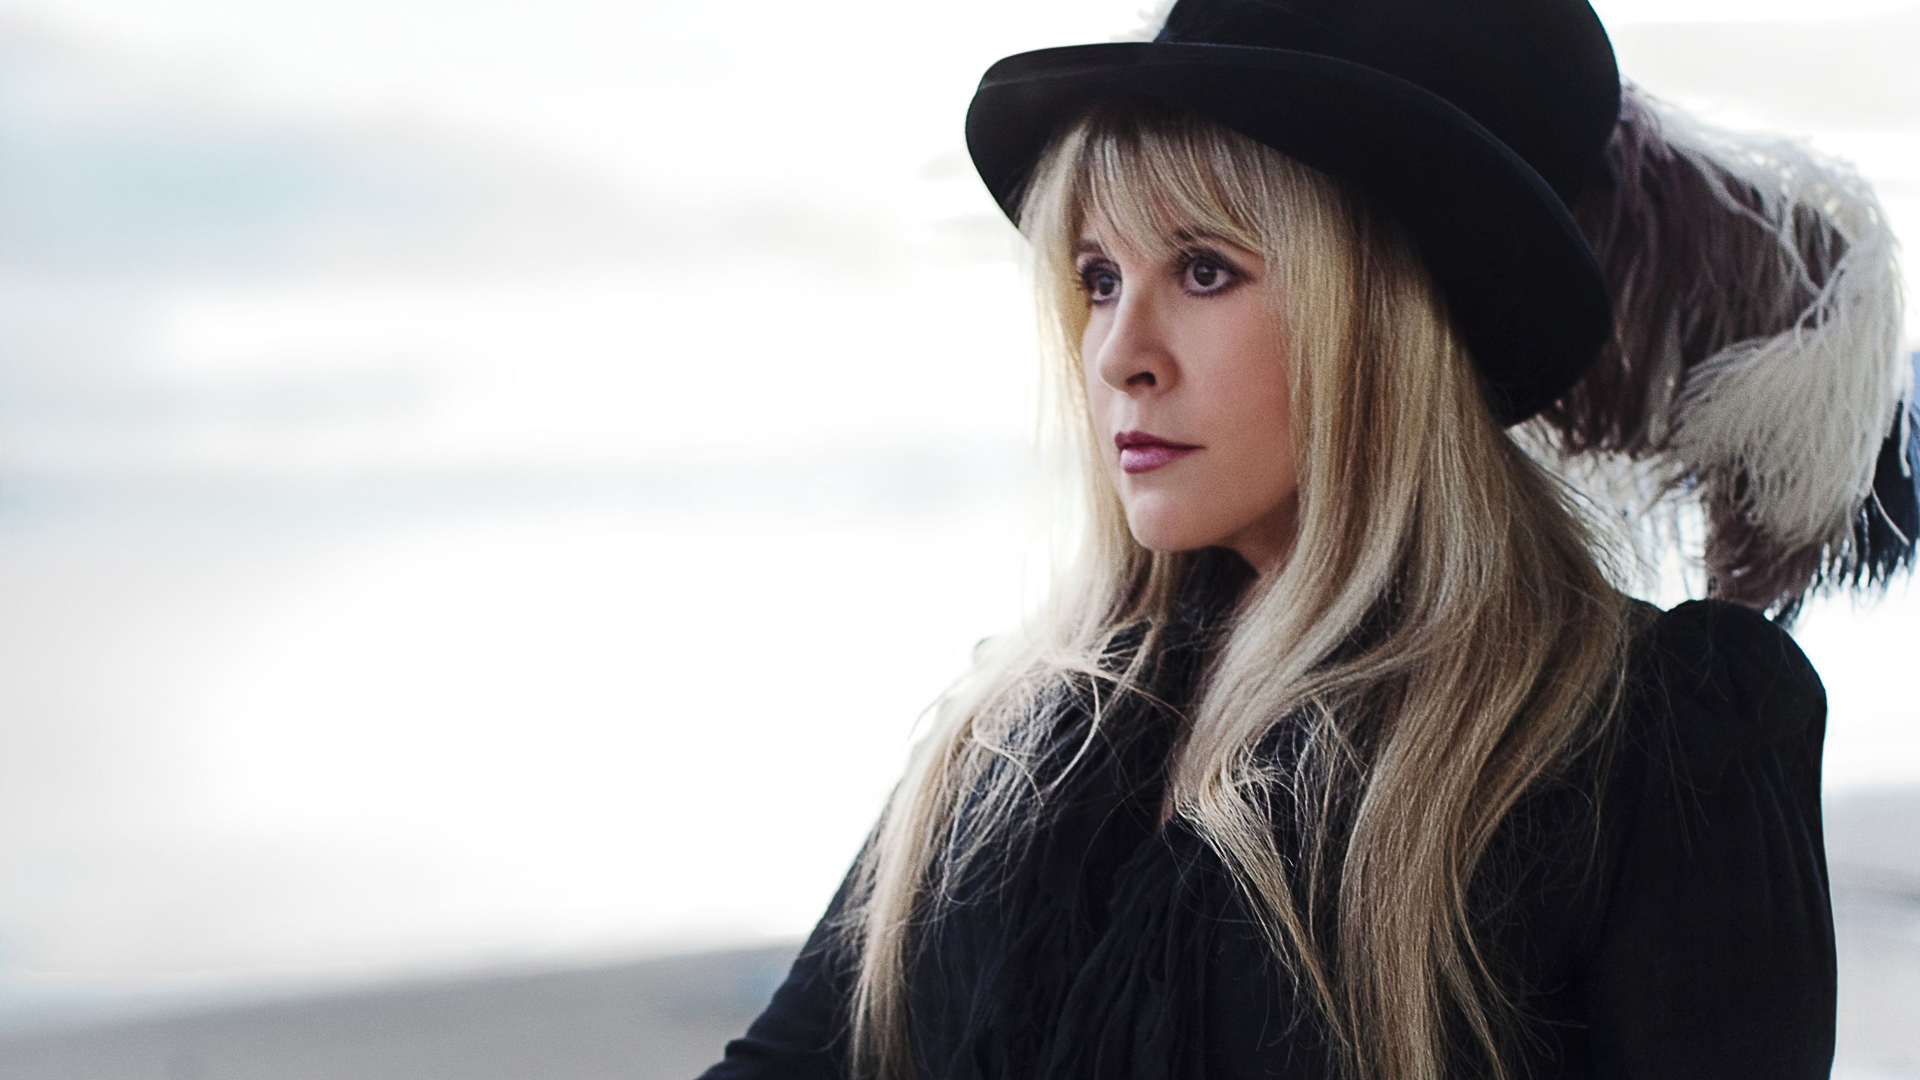 Stevie Nicks Wallpaper